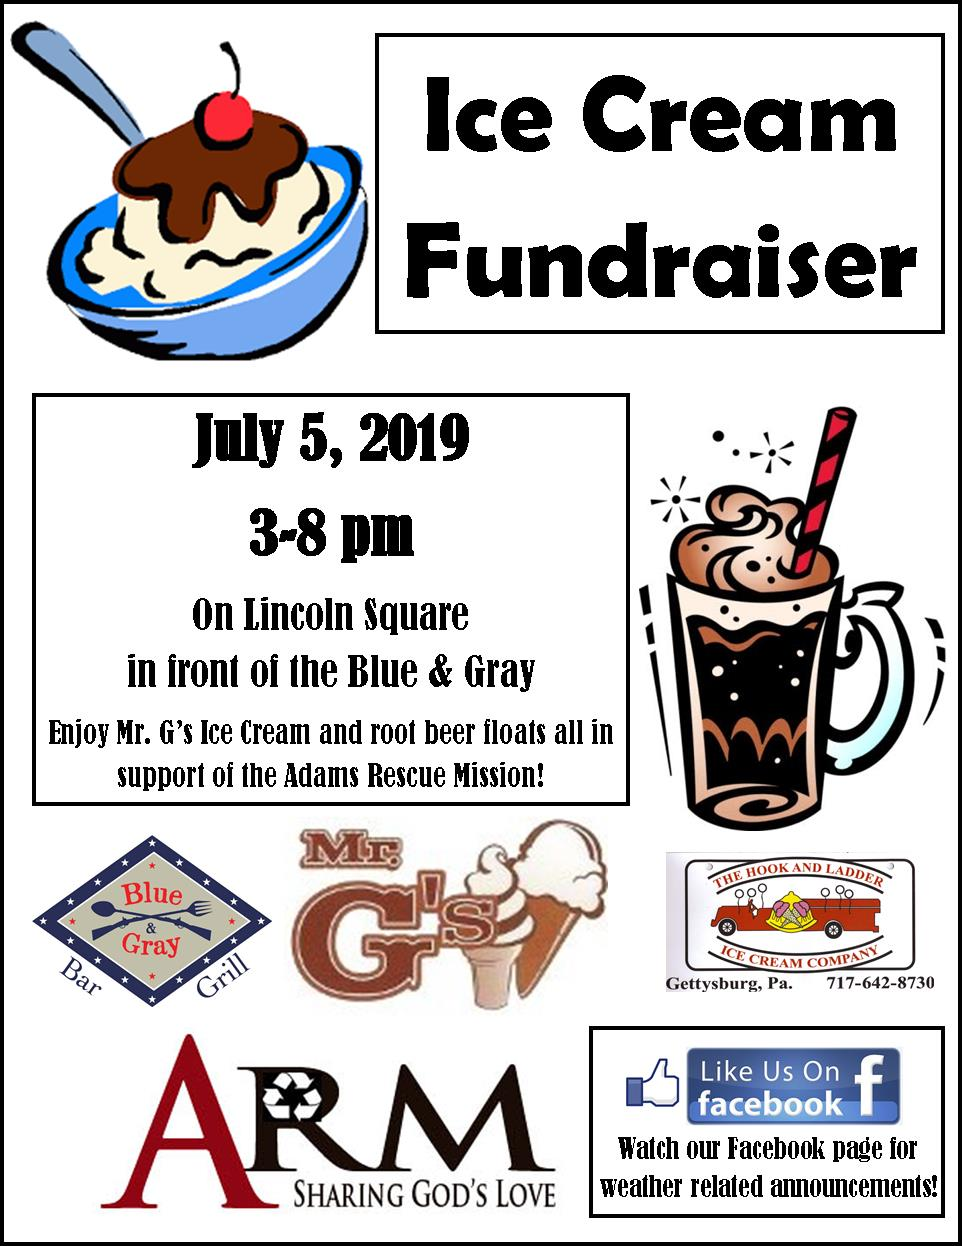 Ice Cream Fundraiser July 5 2019.jpg